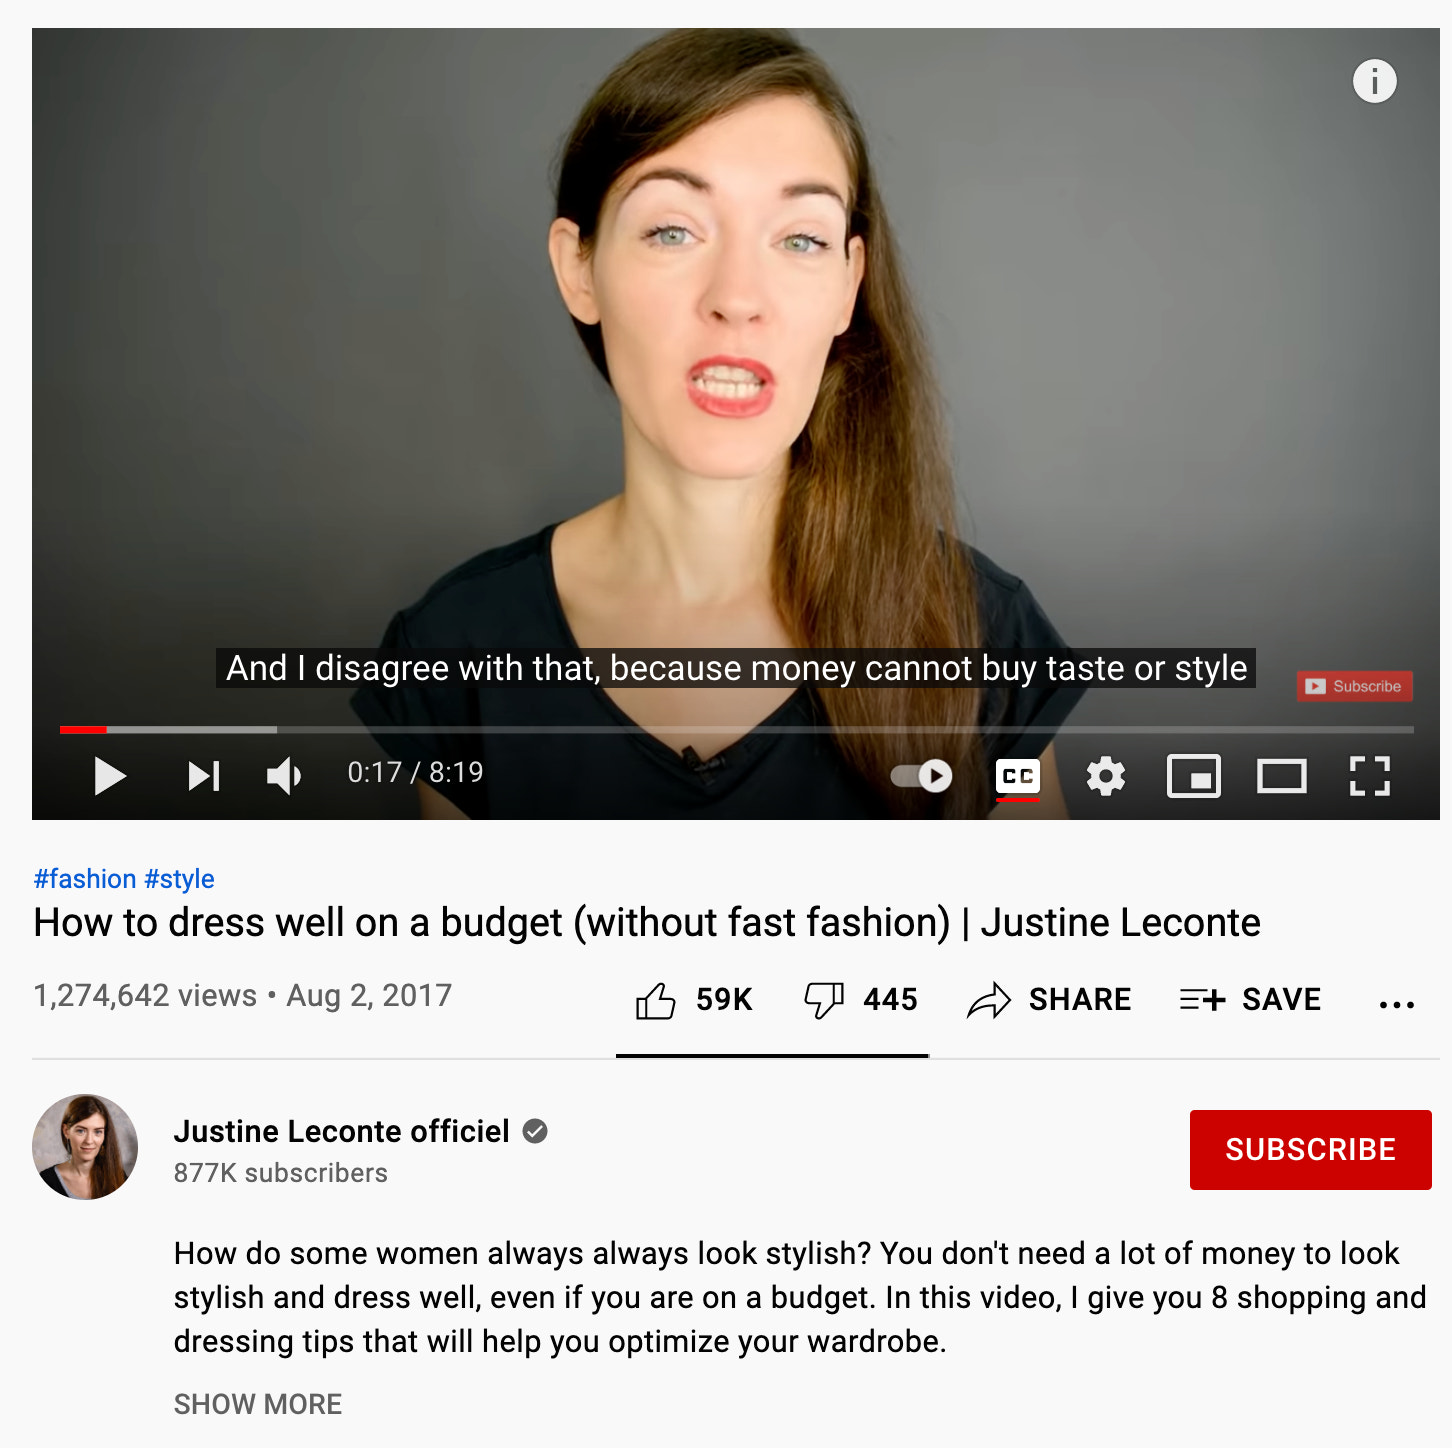 An example of what an educational video looks like comes from Justine Leconte, a fashion designer, teaching women how to be stylish on a budget